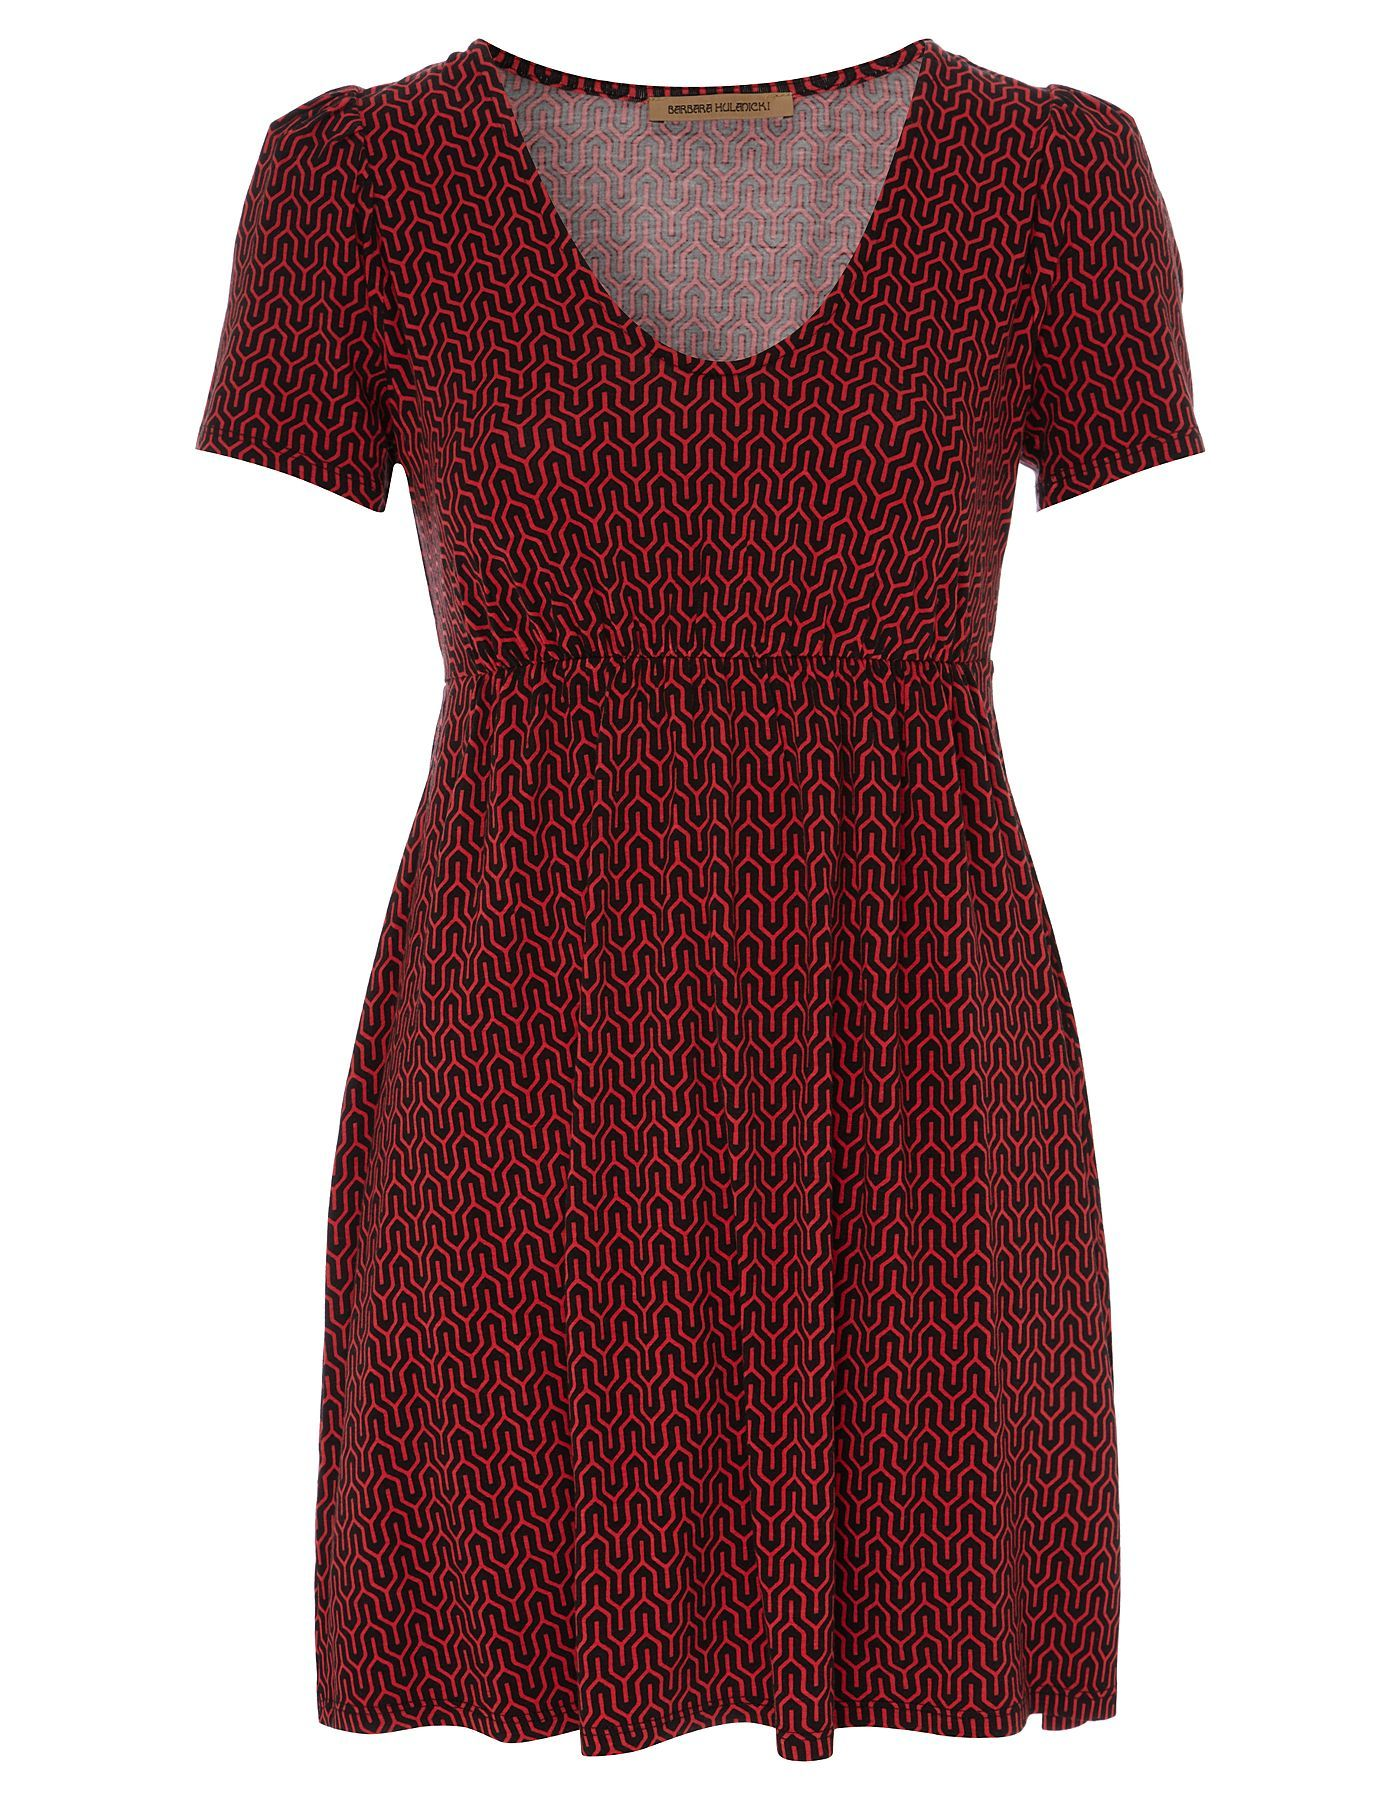 George at ASDA. Jersey v neckline dress with all over print and elasticated waistband from the Barbara Hulanicki range.  Dress length: 32 inches / 81 cm approximately.   Fabric composition: 95% Viscose, 5% Elastane.   Product Code: 4226078. £14.00.